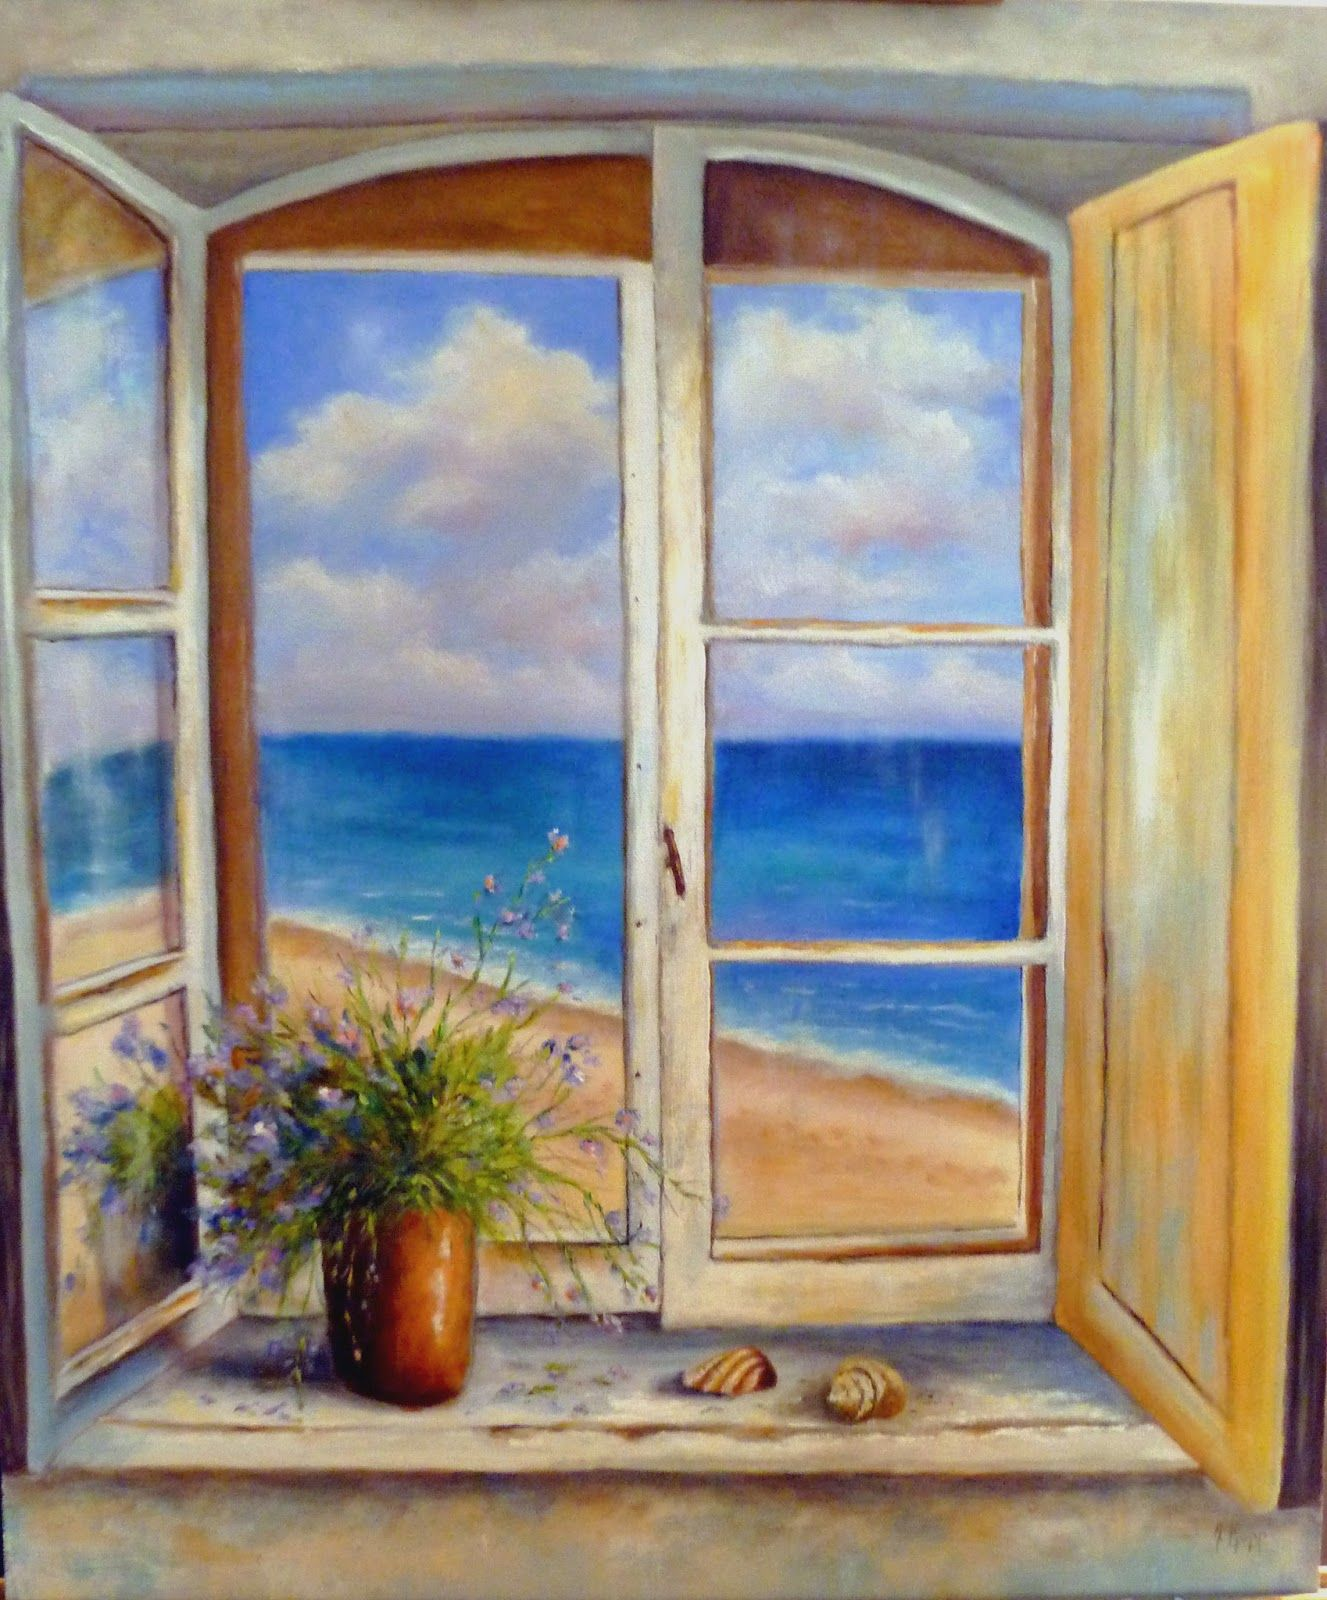 paintings of windows looking out | Friday, January 11, 2013 ...